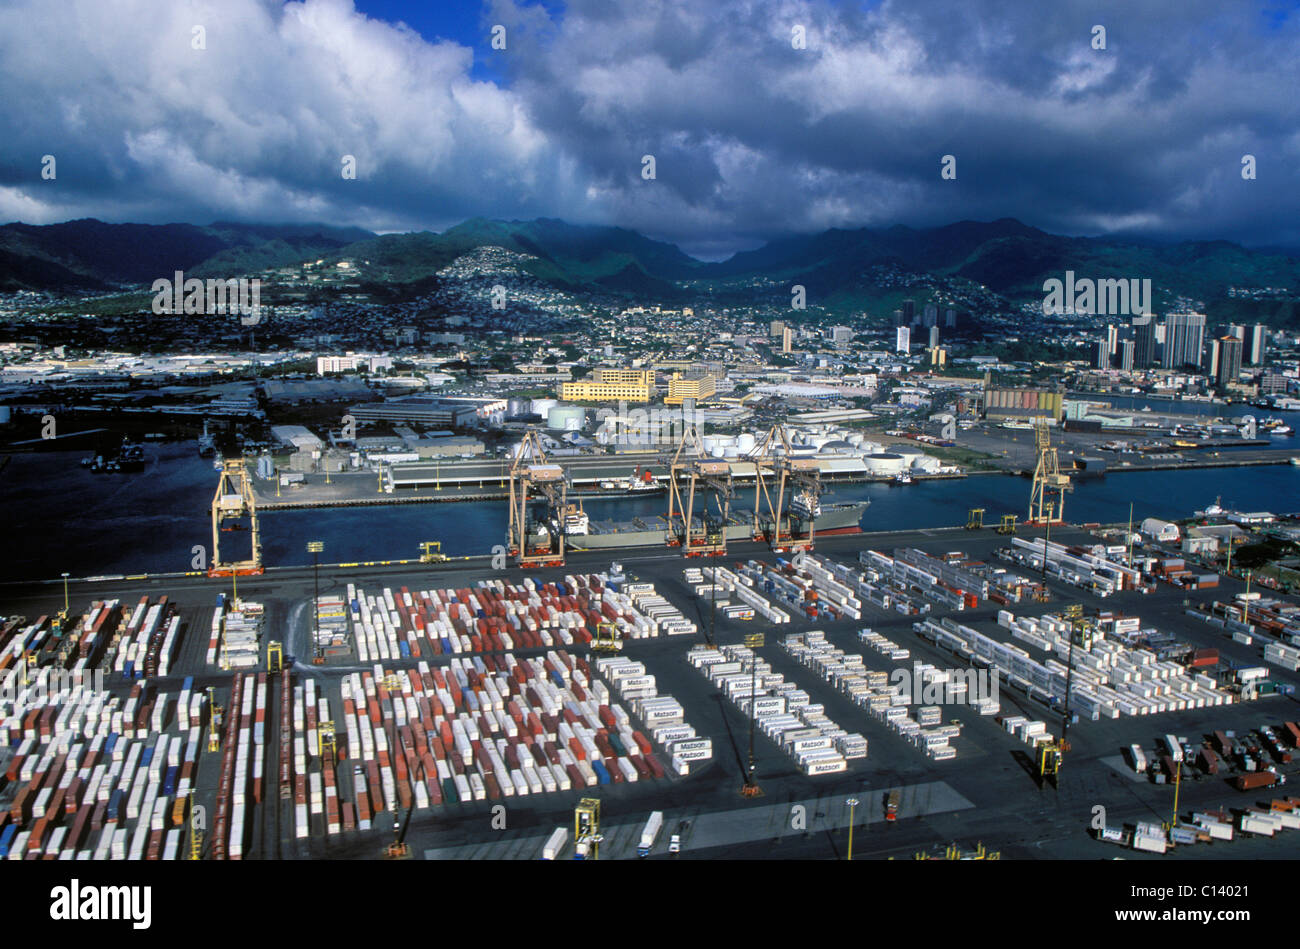 Port Of Honolulu >> An Aerial Photograph Of The Port Of Honolulu In Hawaii Stock Photo